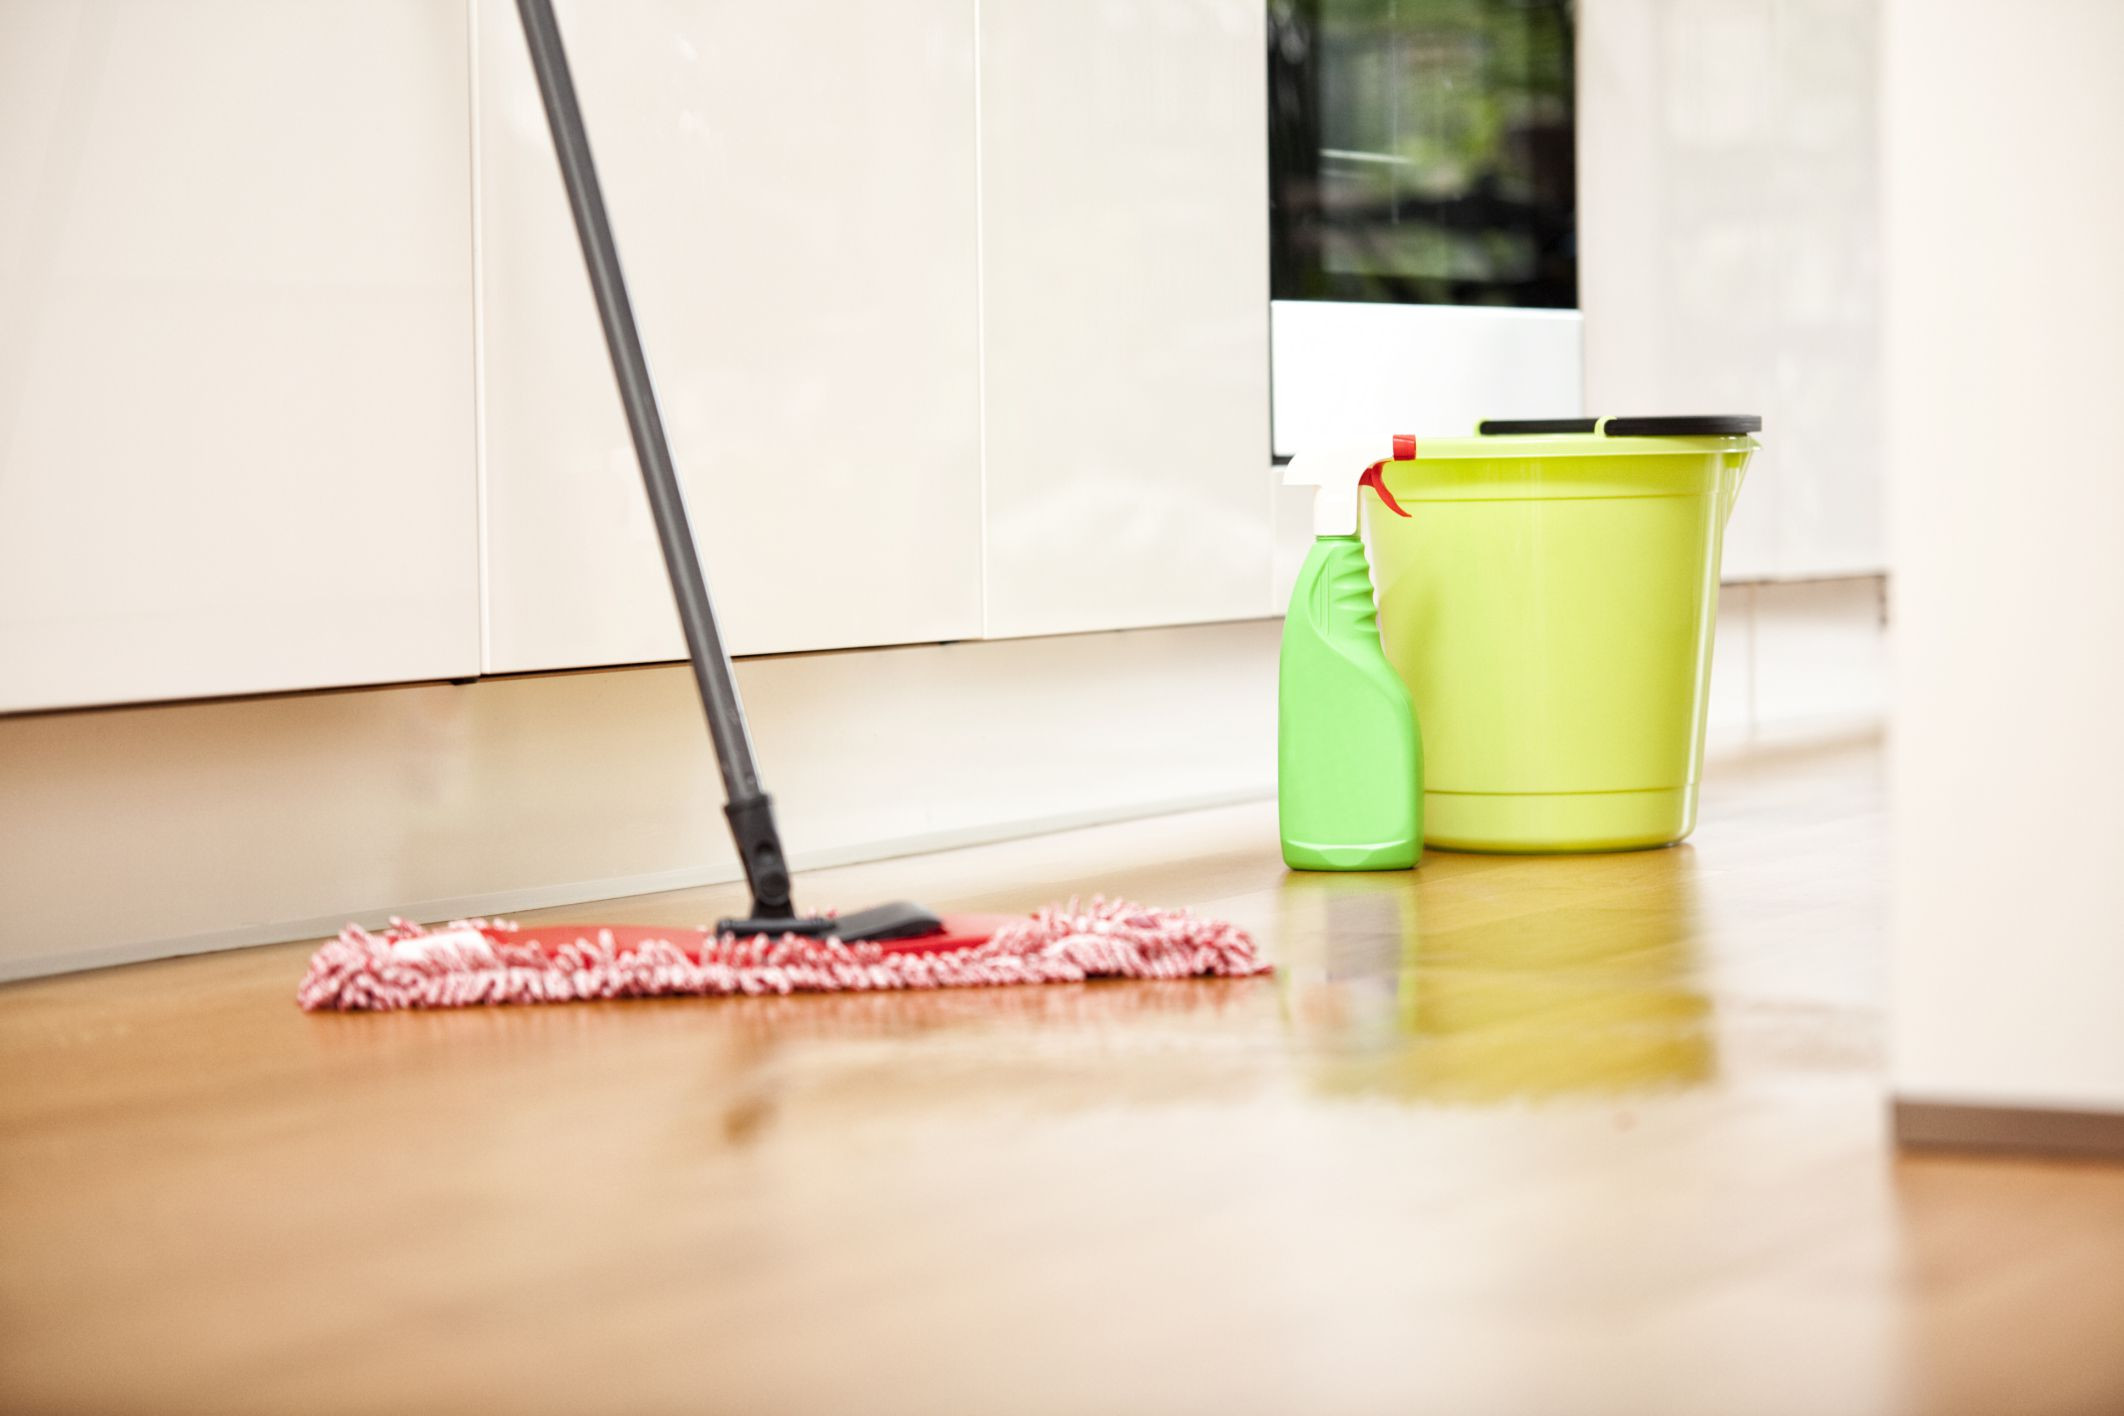 vim hardwood floor surface cleaner 1l of 17 cleaning uses for dish soap around the home in floor mopping mop and cleaning products